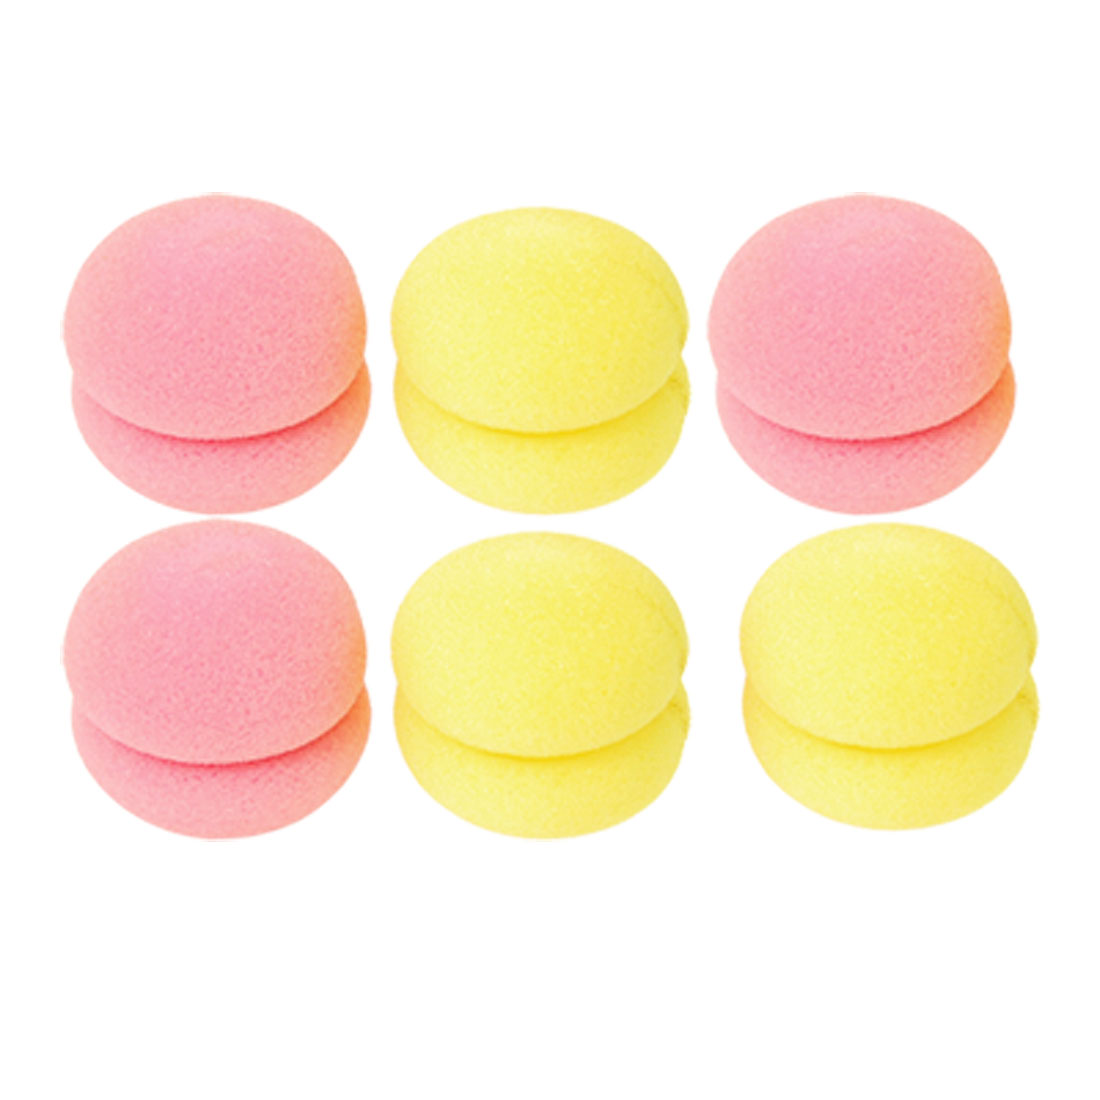 6 Pcs Pink Yellow Sponge Ball Hair Styler Curler Roller for Lady